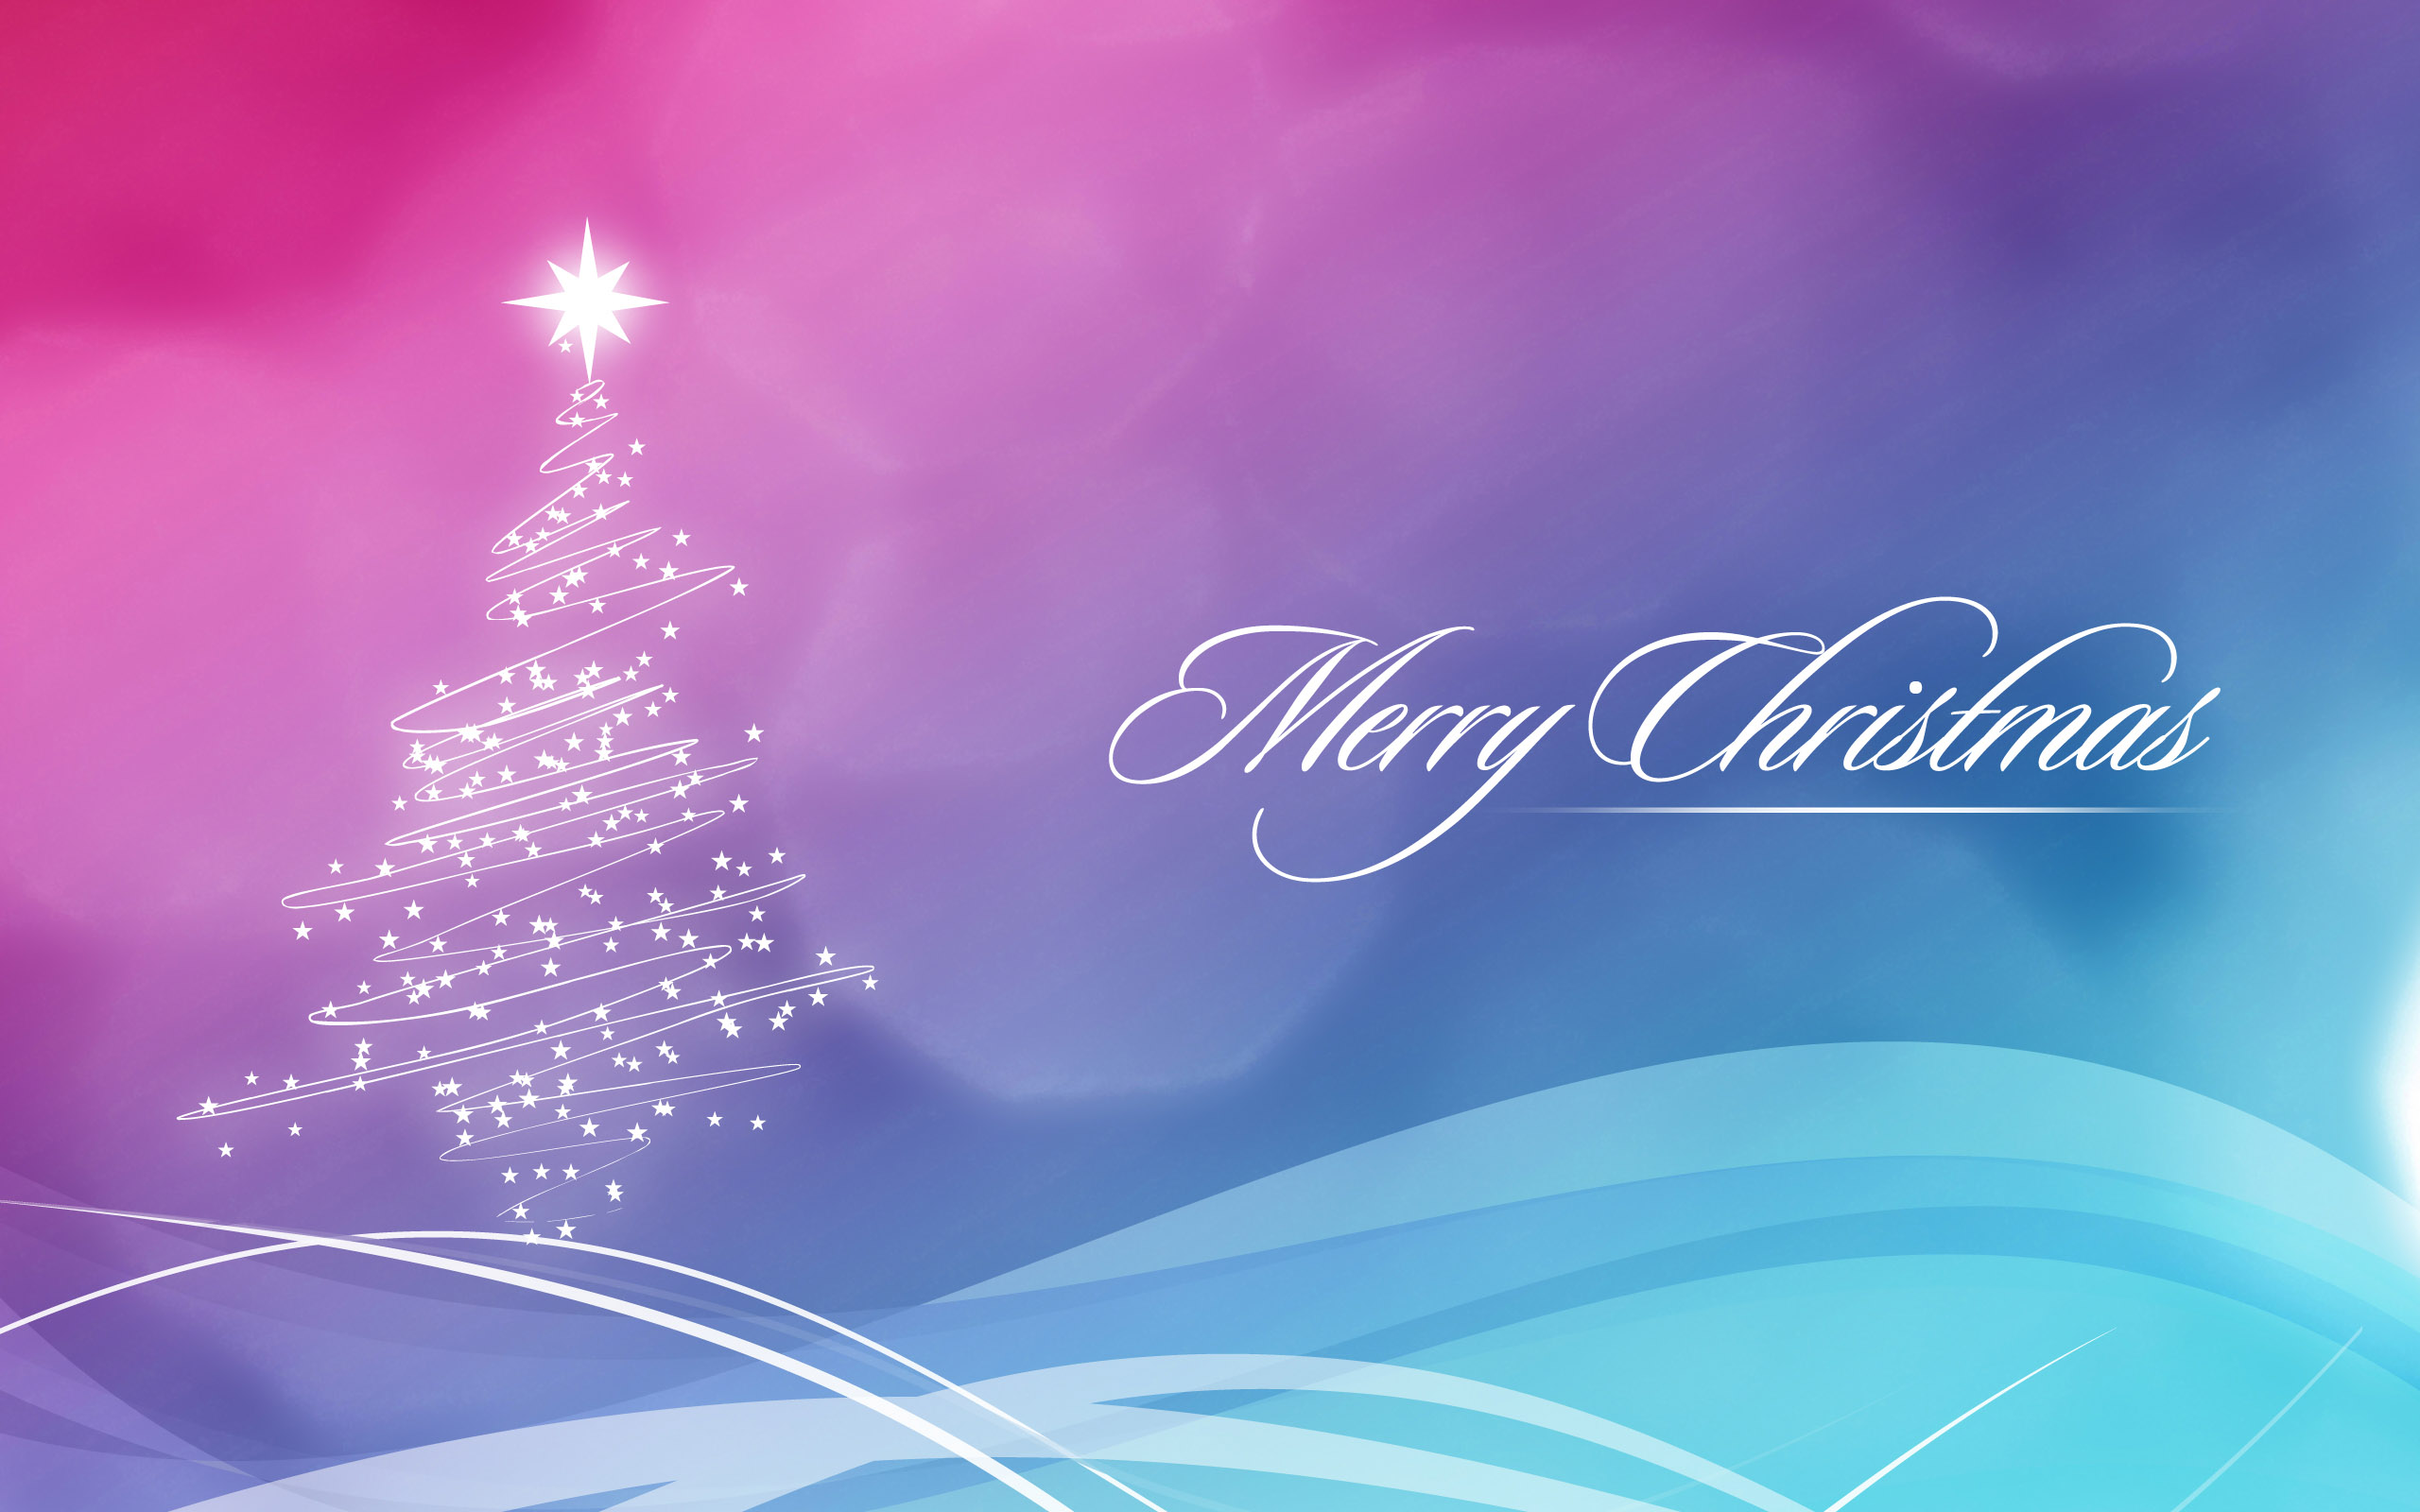 40 free christmas wallpapers hd quality